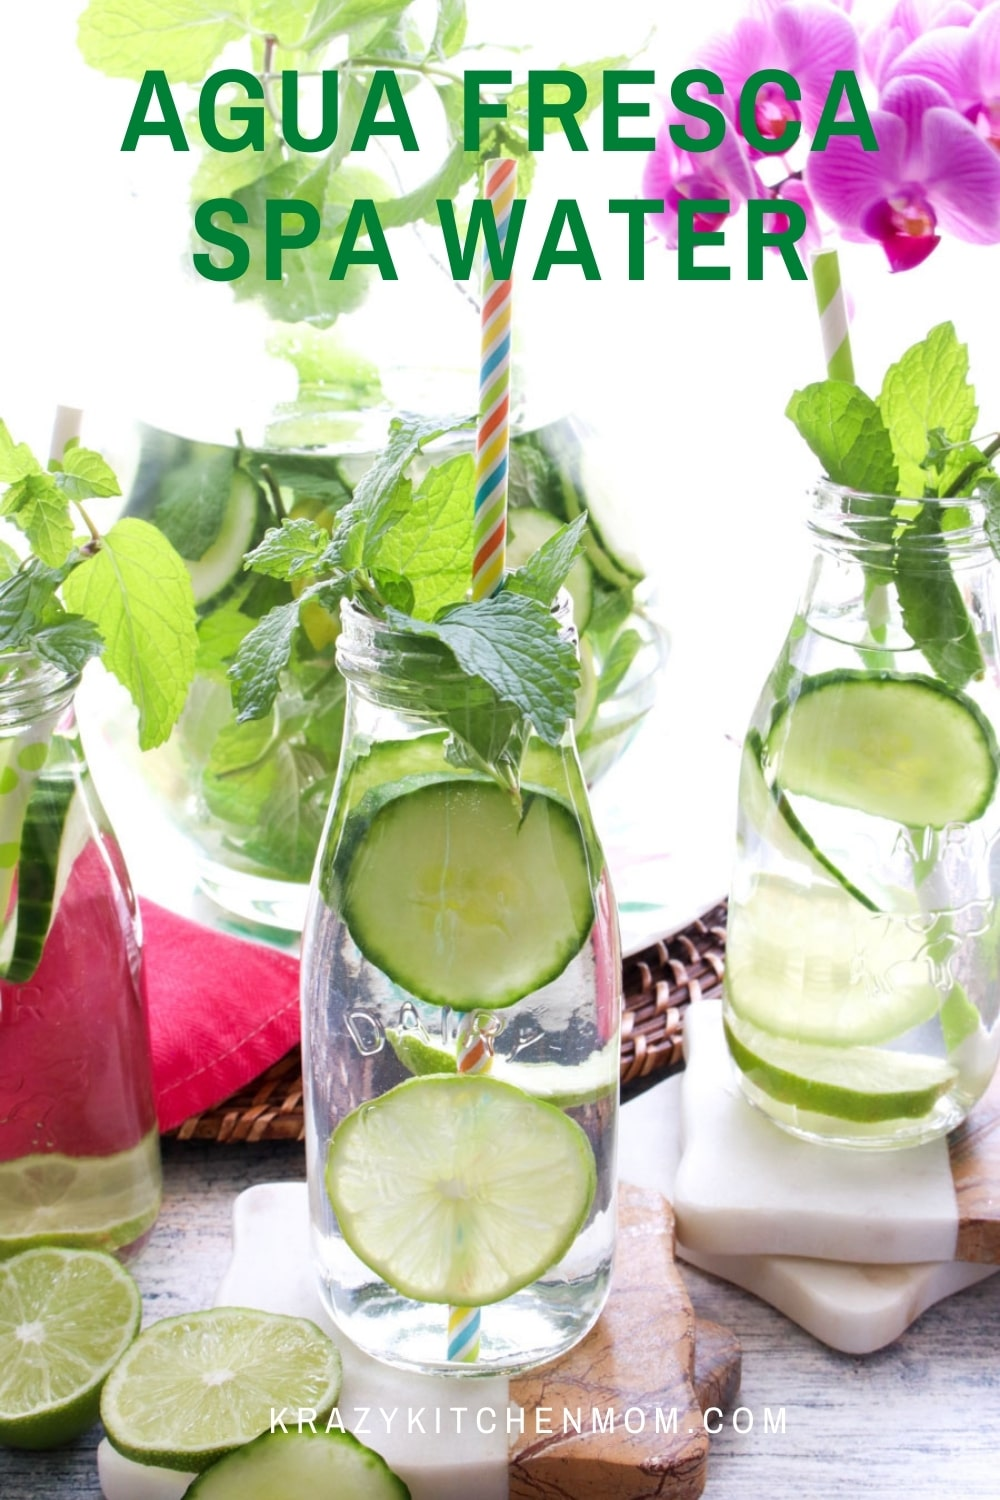 When it's hot outside all you want is something cold and refreshing. Kick it up by making a large pitcher of cucumber lime agua fresca spa water.  via @krazykitchenmom